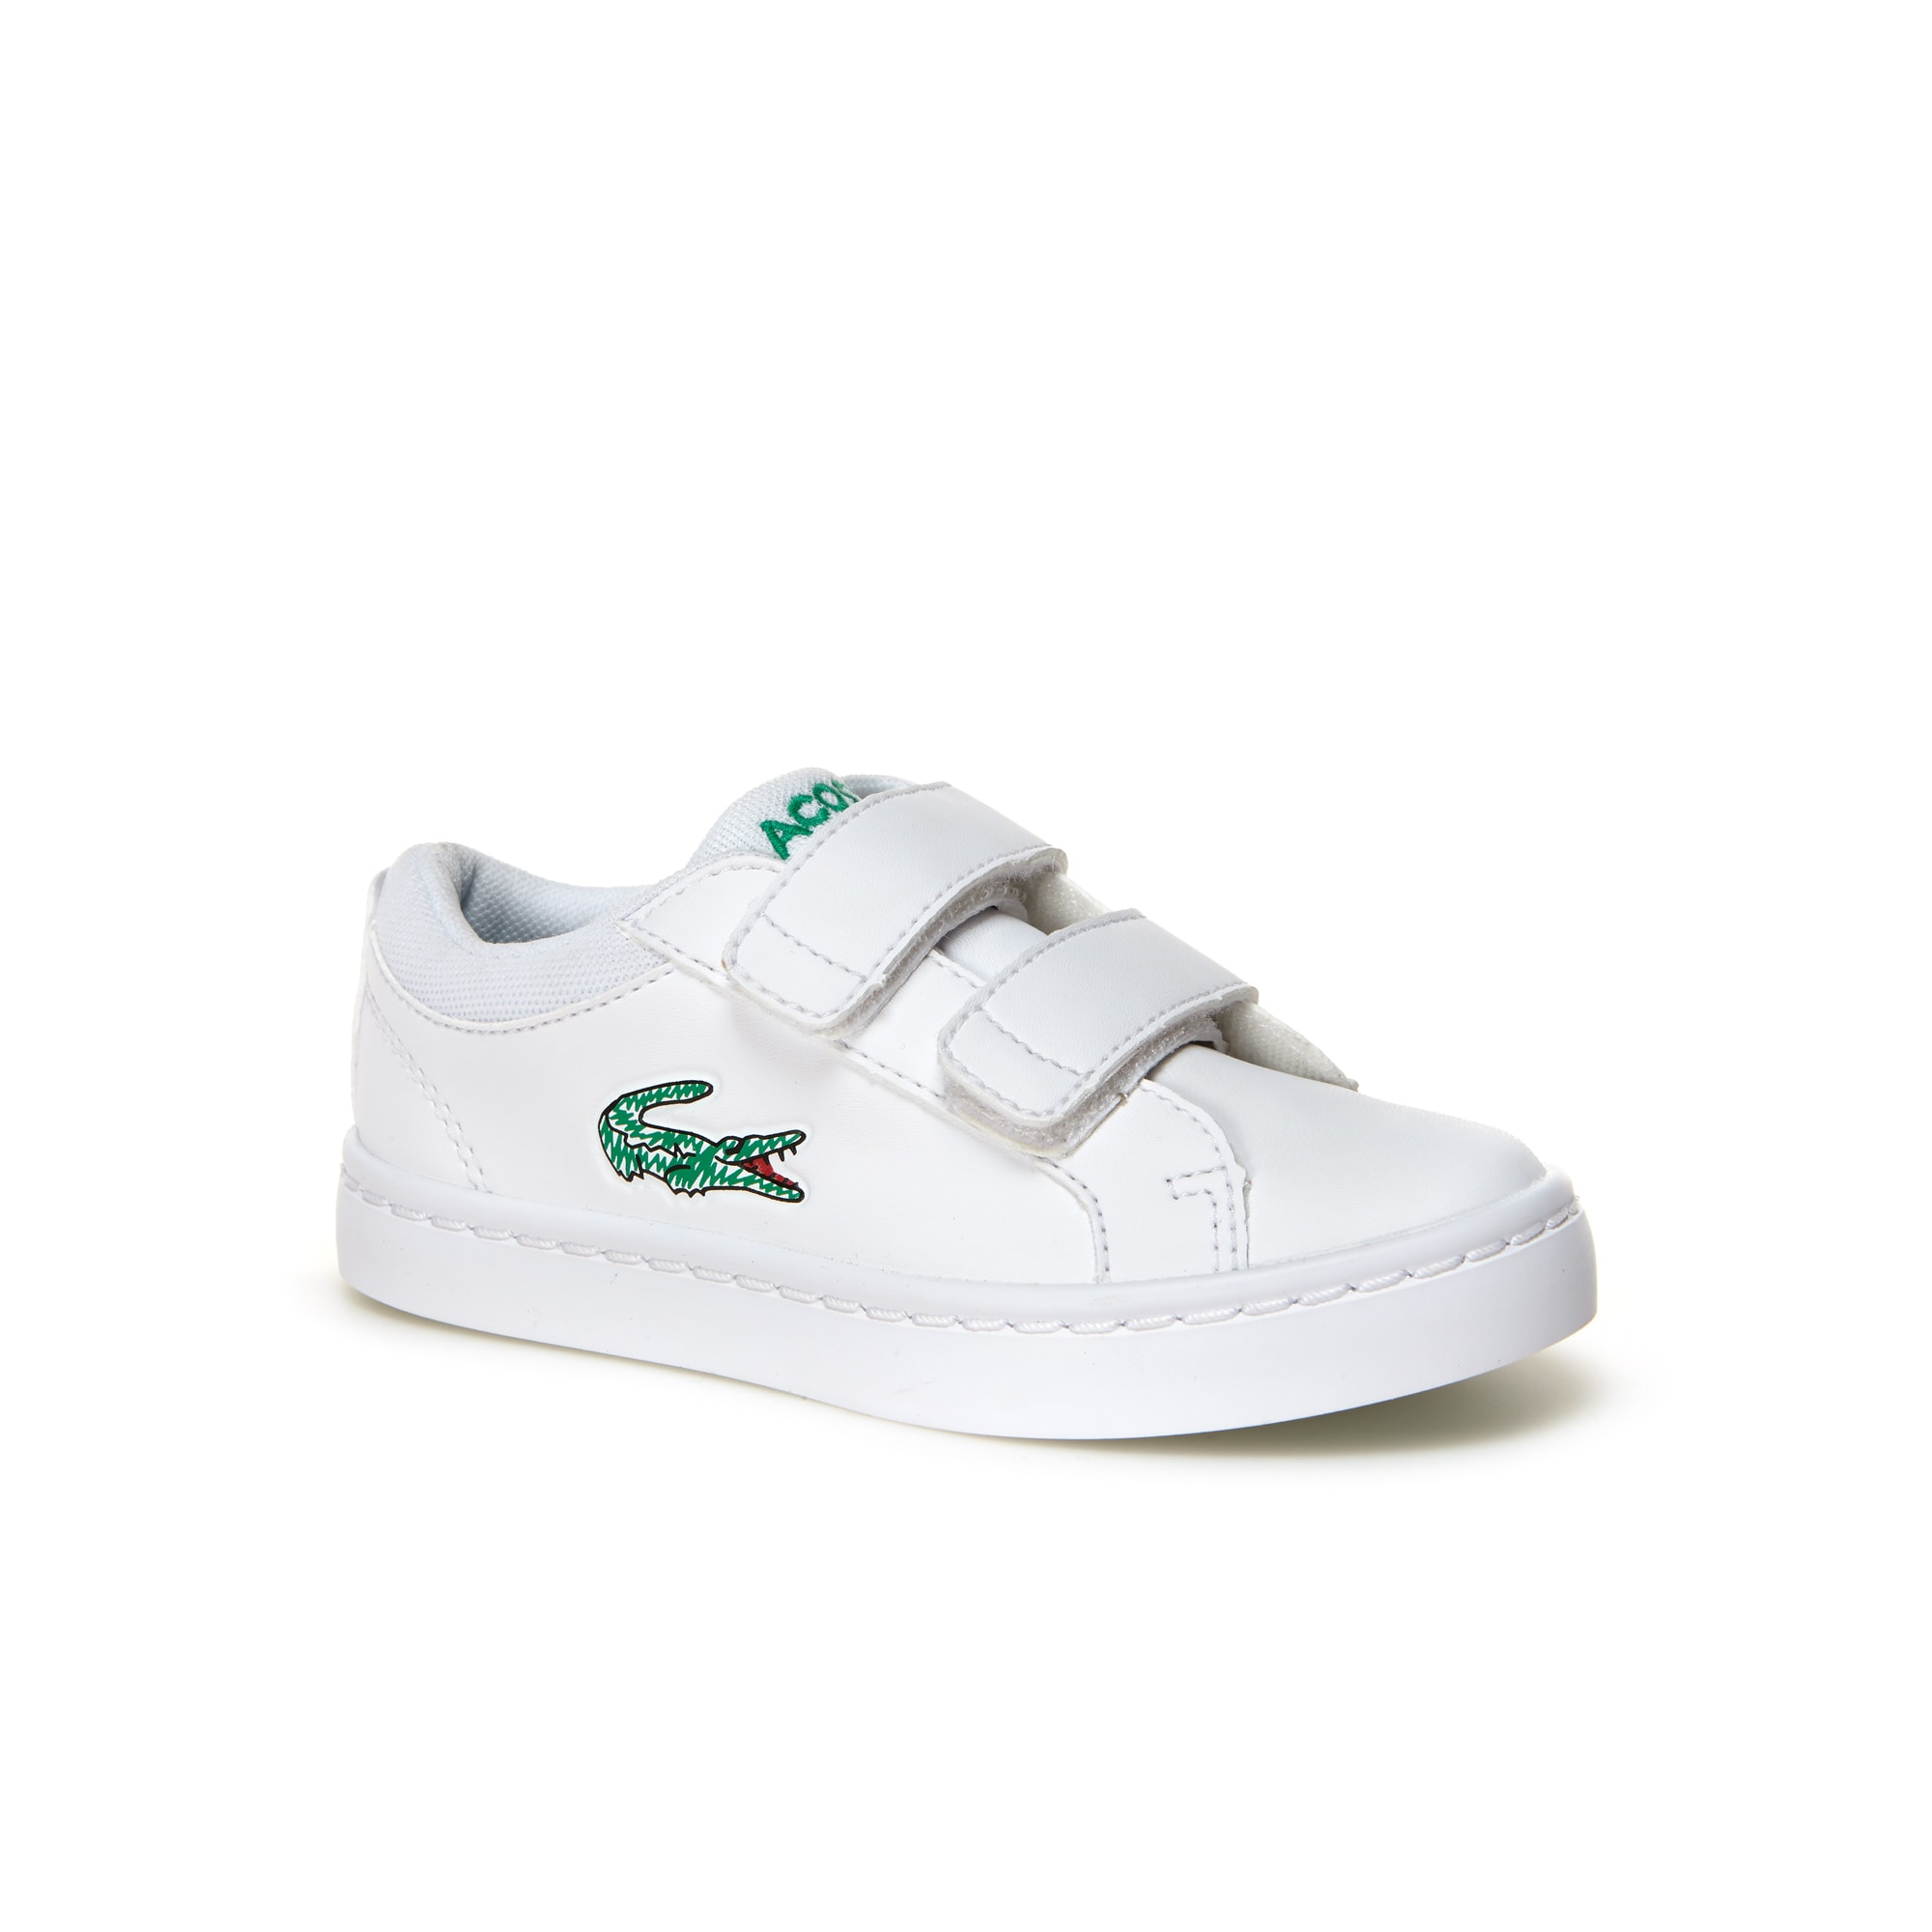 Sneakers Straightset Lace bimbo in similpelle